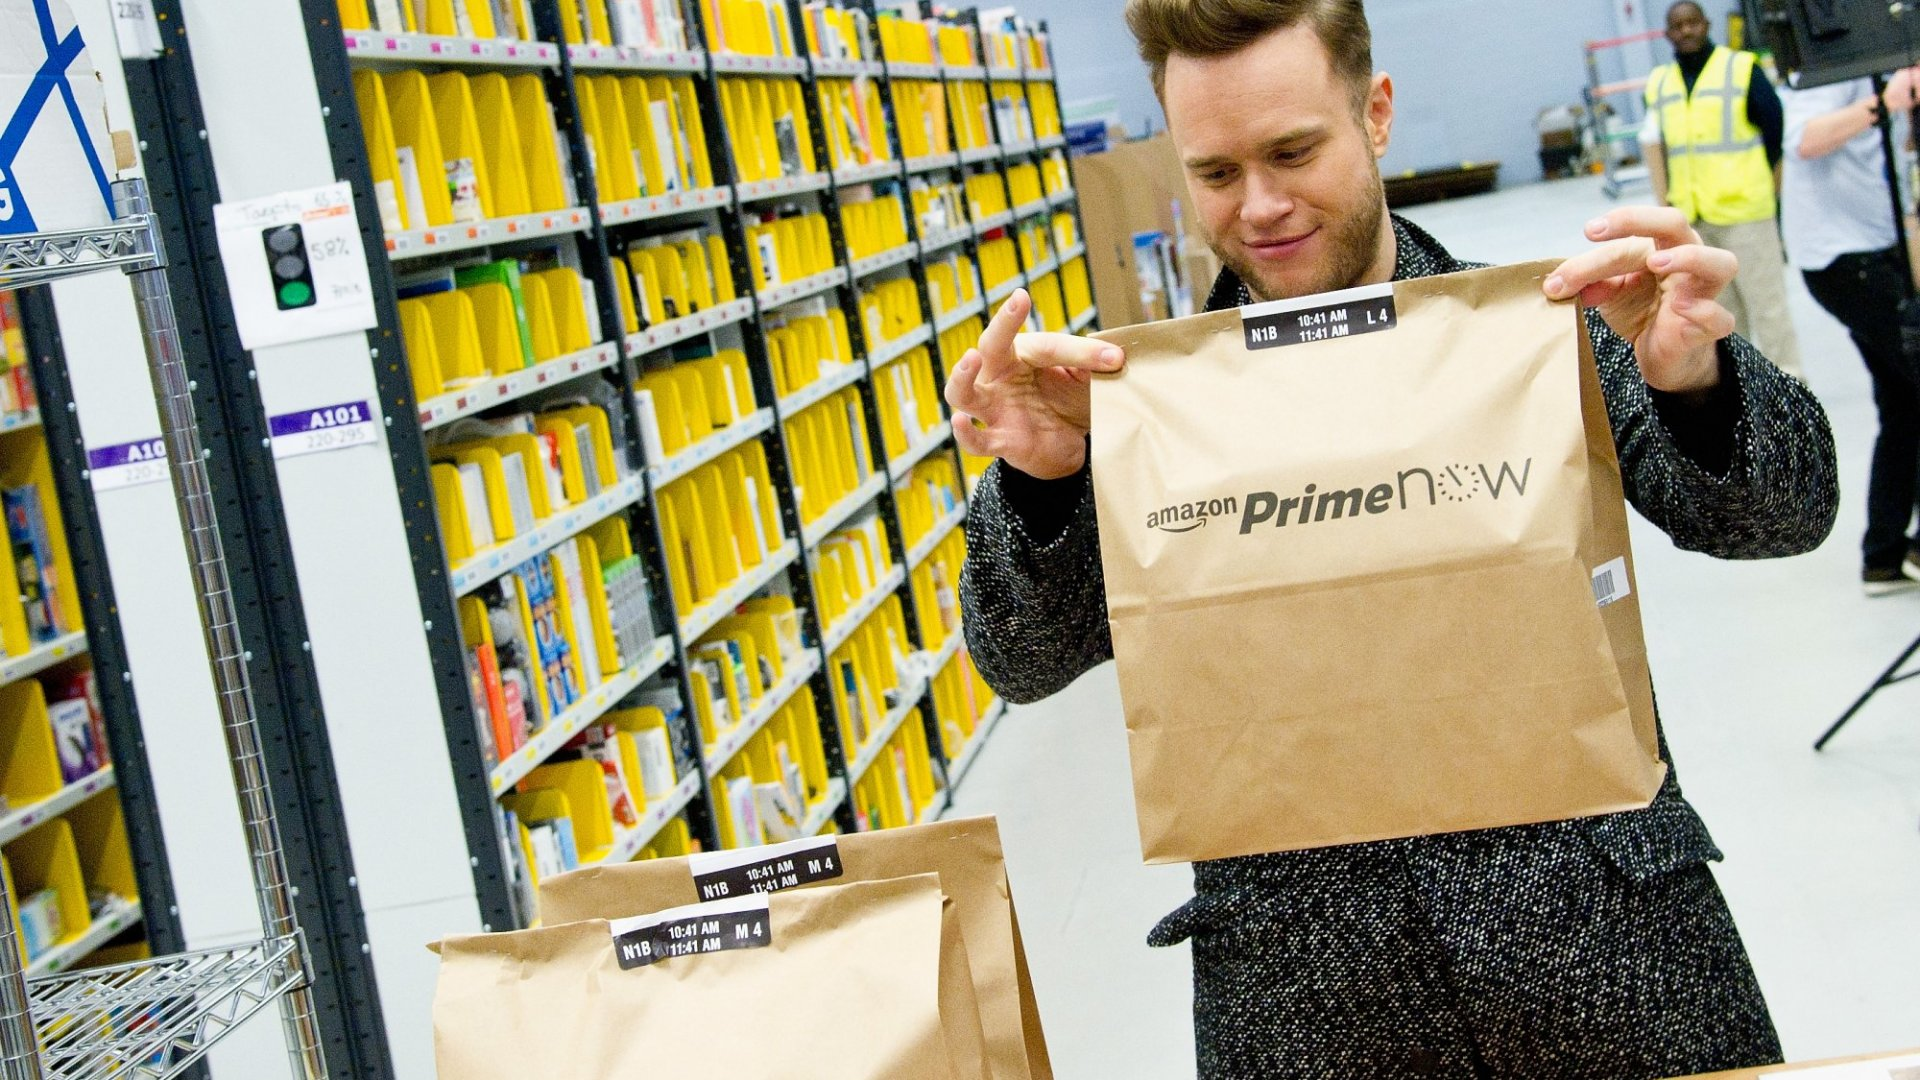 Jeff Bezos's Amazon Will Launch a Delivery Service to Compete With UPS and FedEx